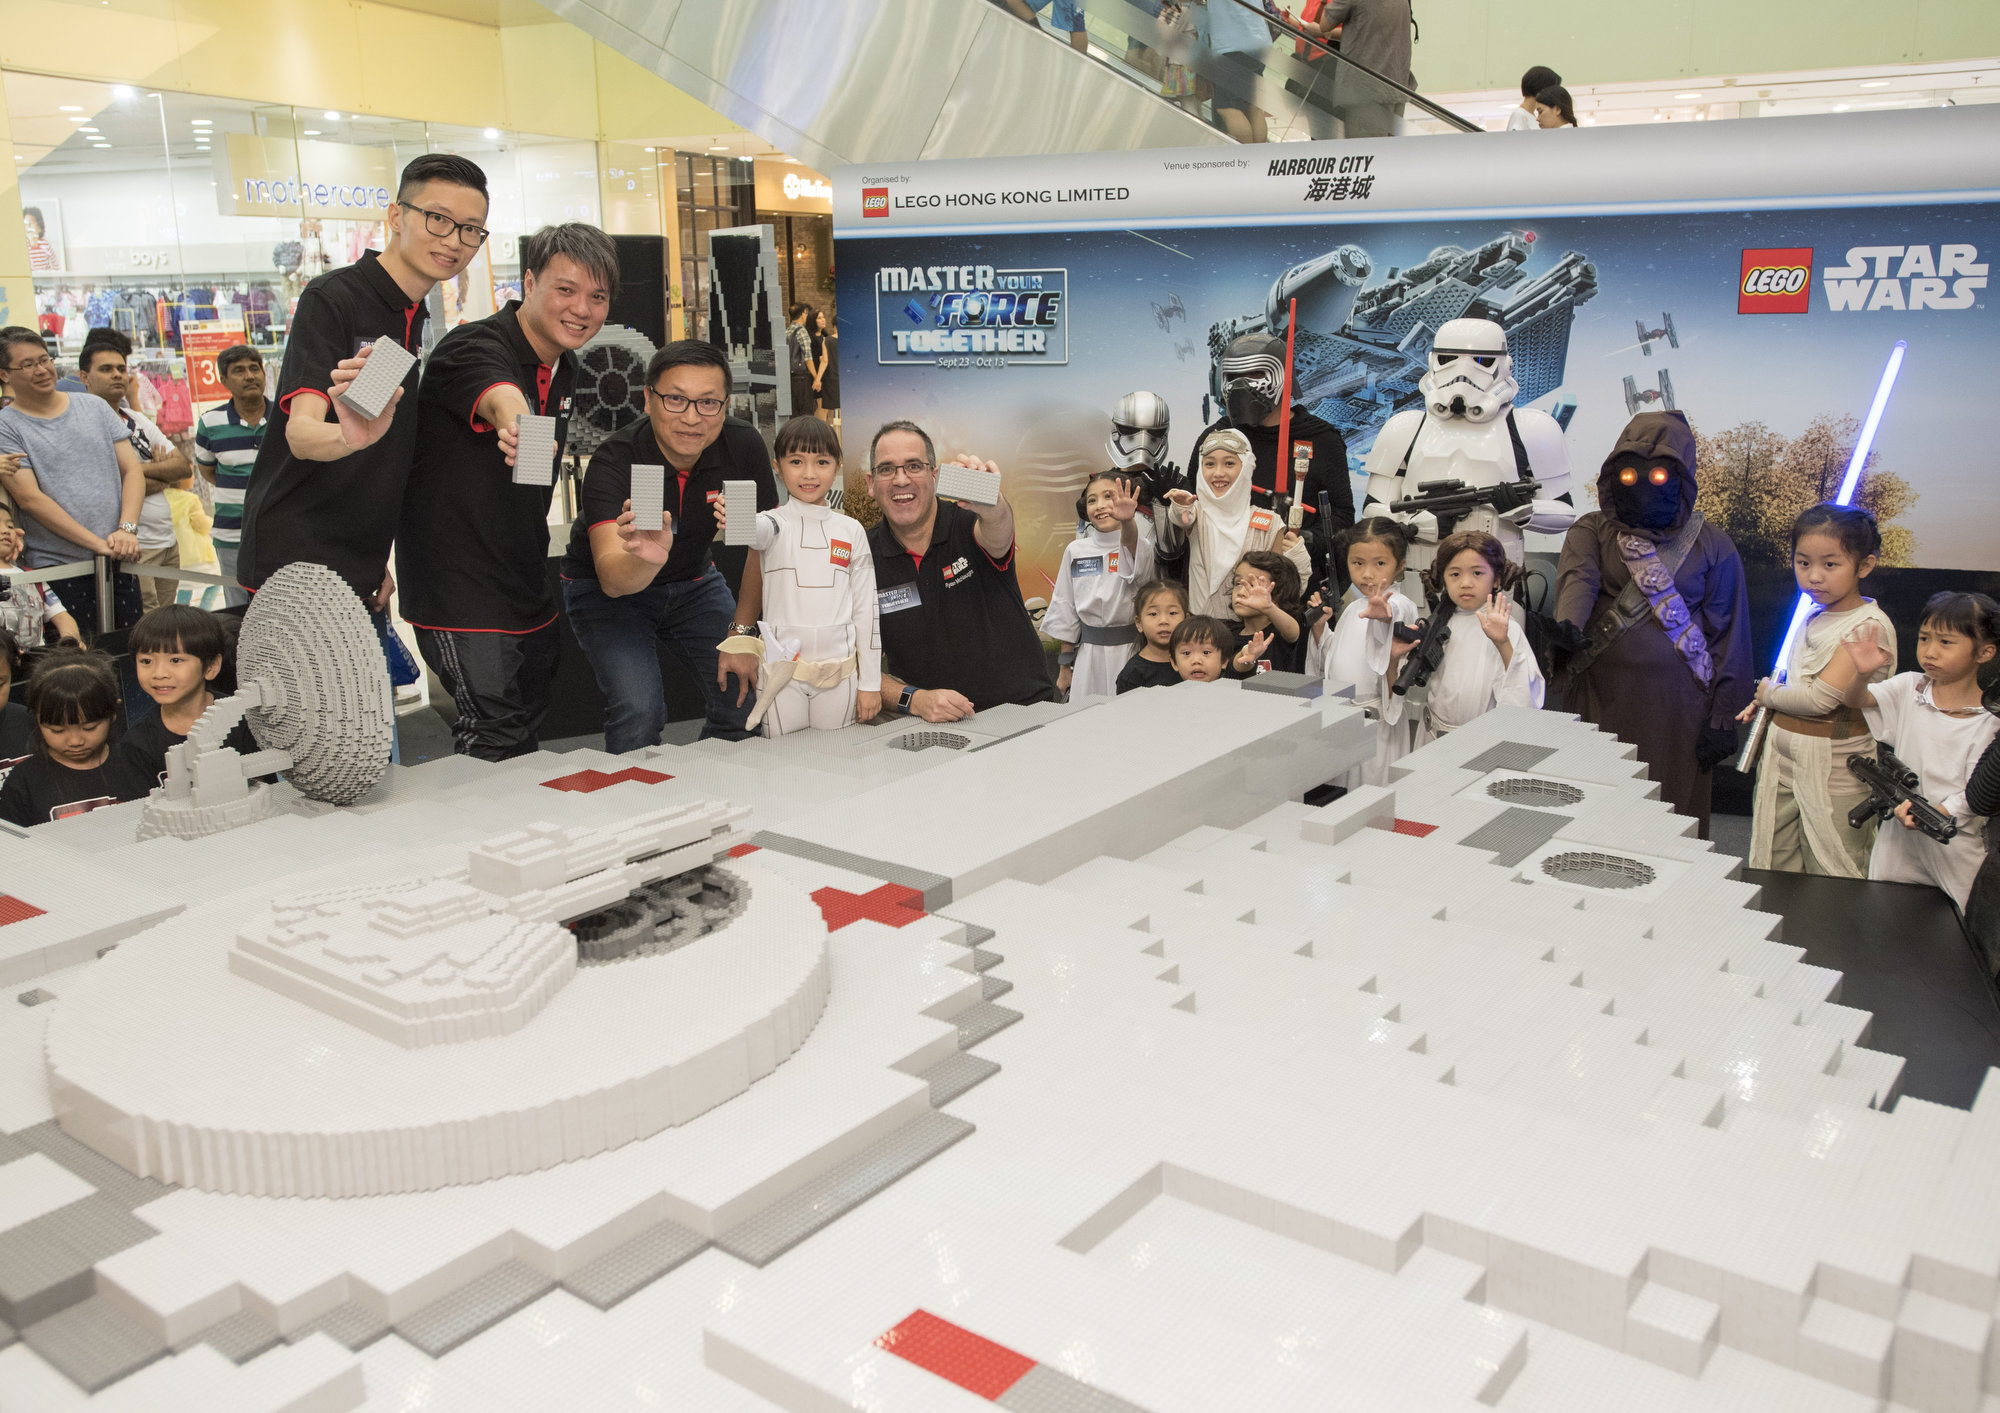 lego-star-wars_master-your-force-together_build-millennium-falcon_toppin-1